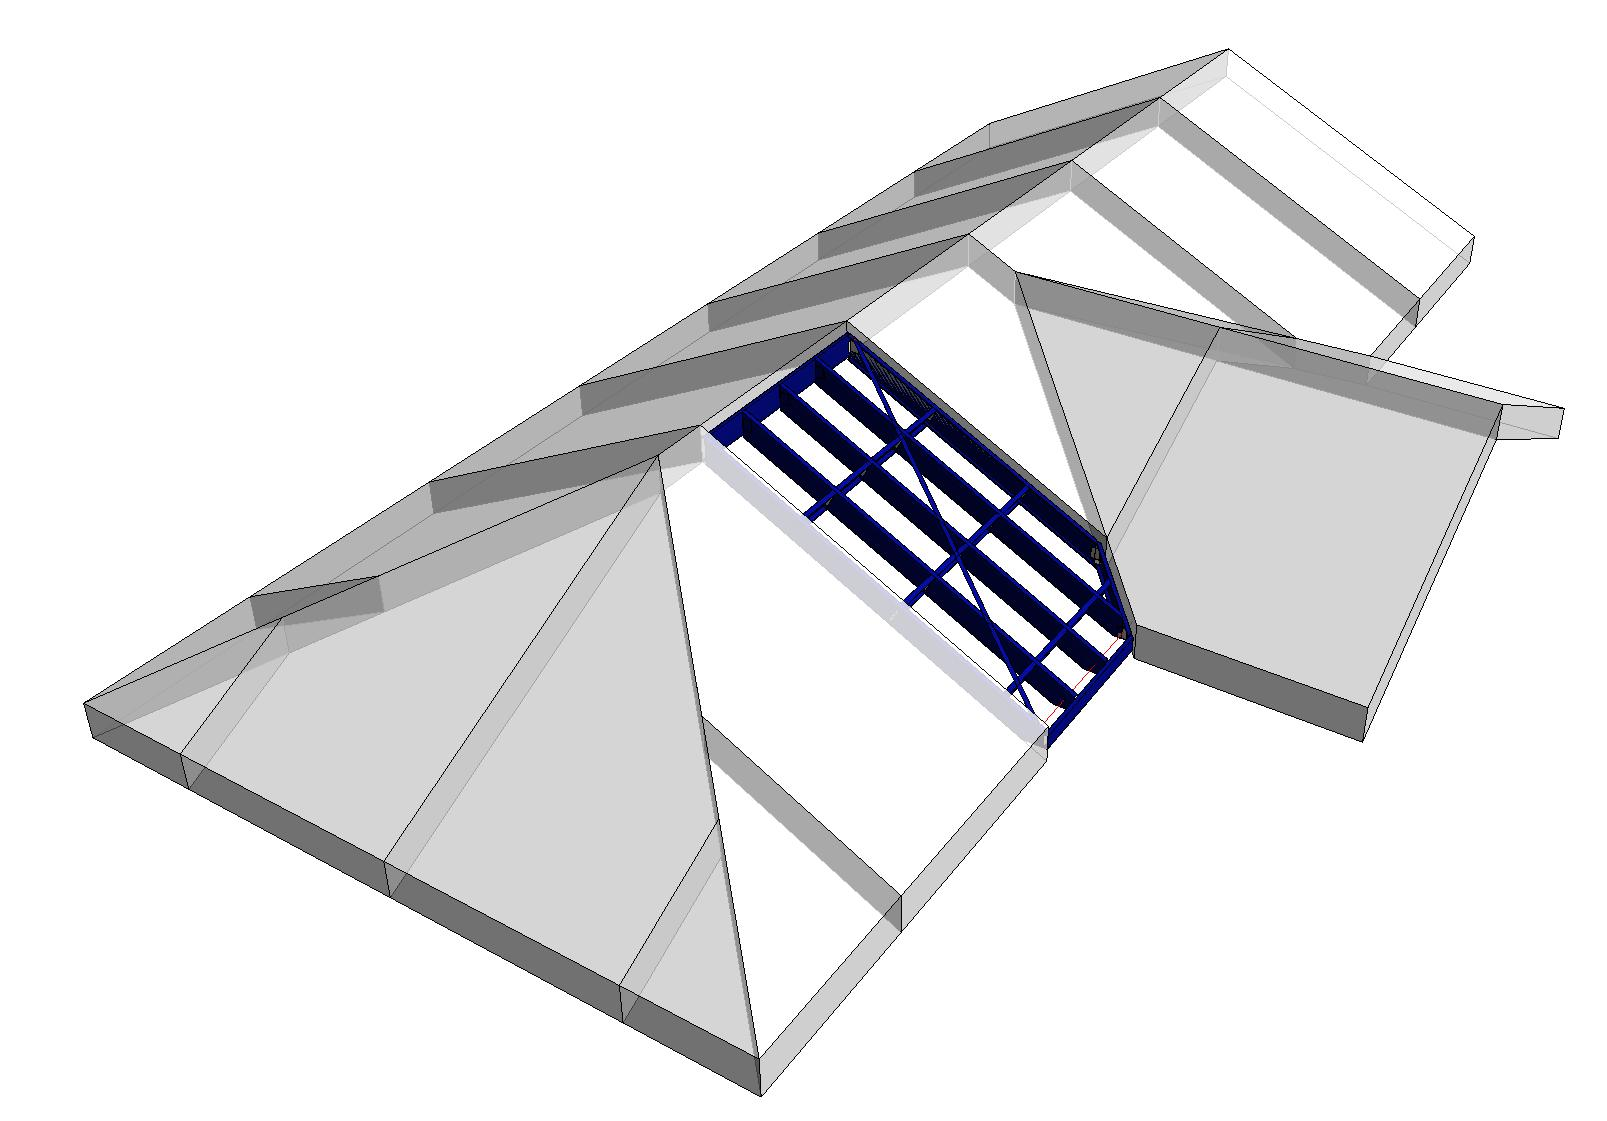 New Prefabricated Metal Roof Framing Solution For Revit